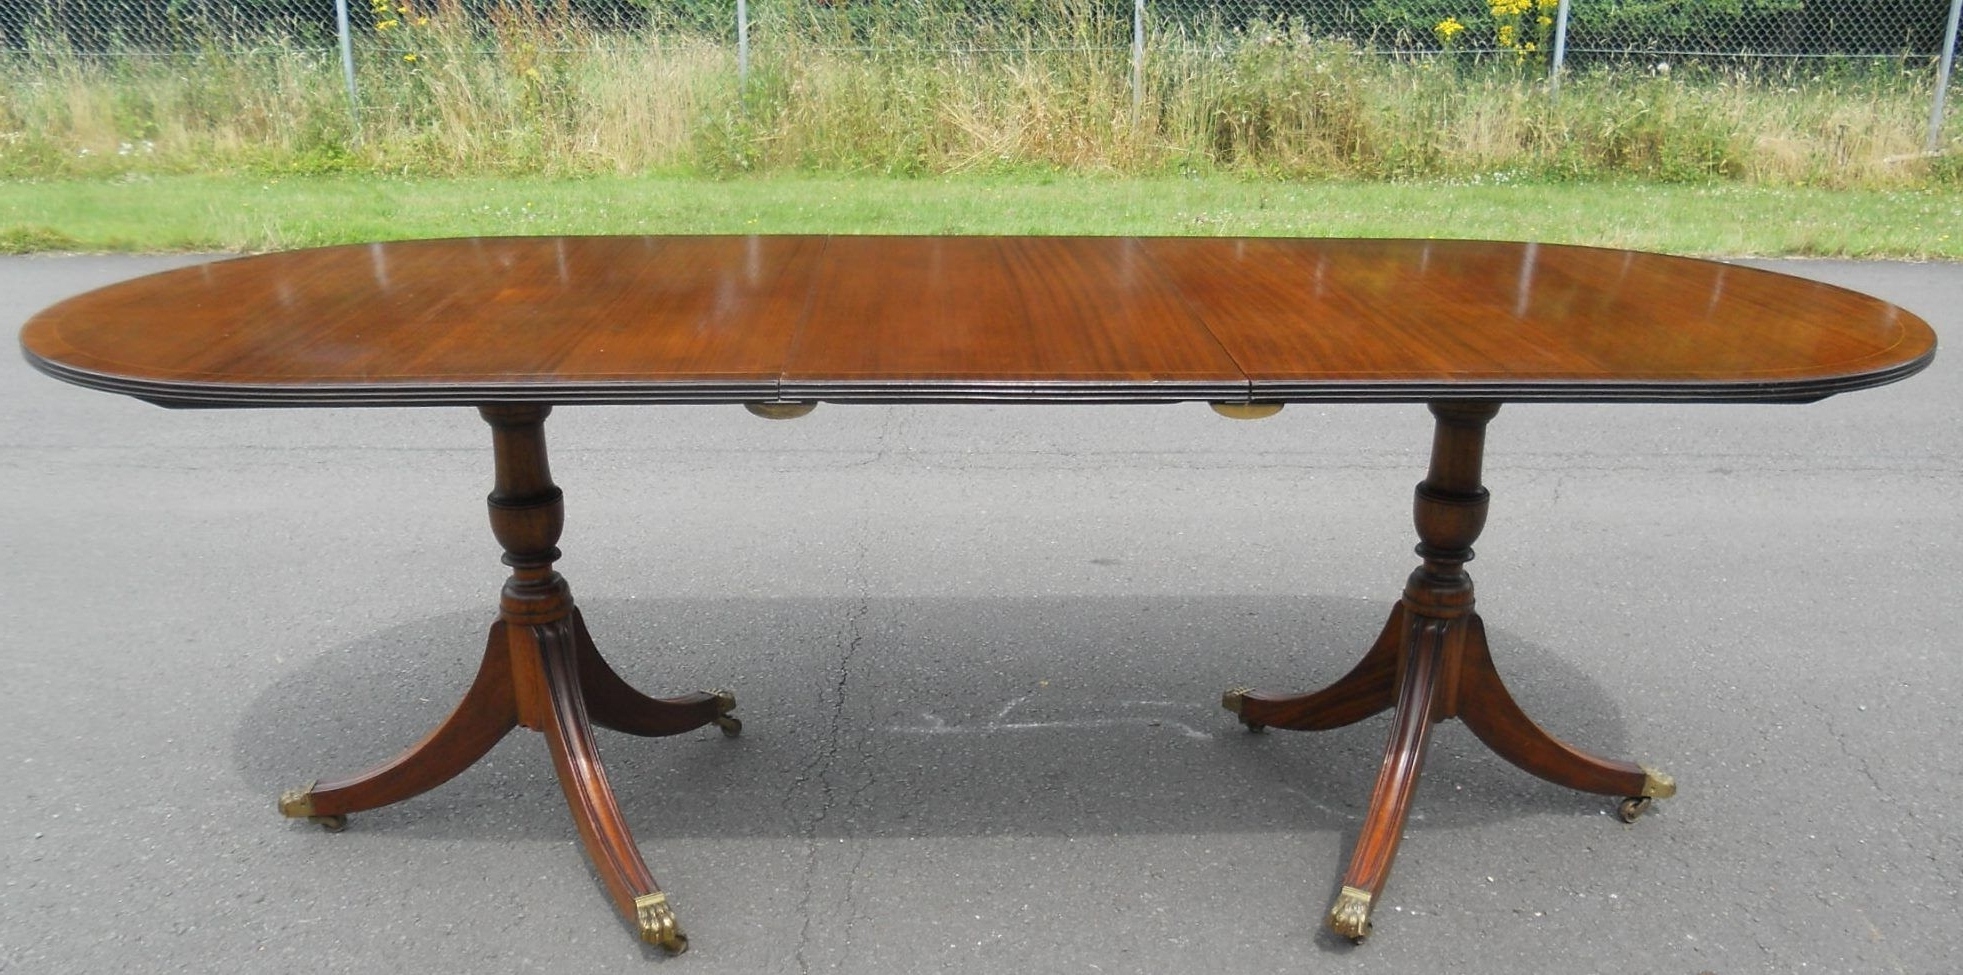 Mahogany Extending Dining Tables Throughout Most Current Mahogany Extending Dining Table To Seat Eightrackstraw (View 15 of 25)